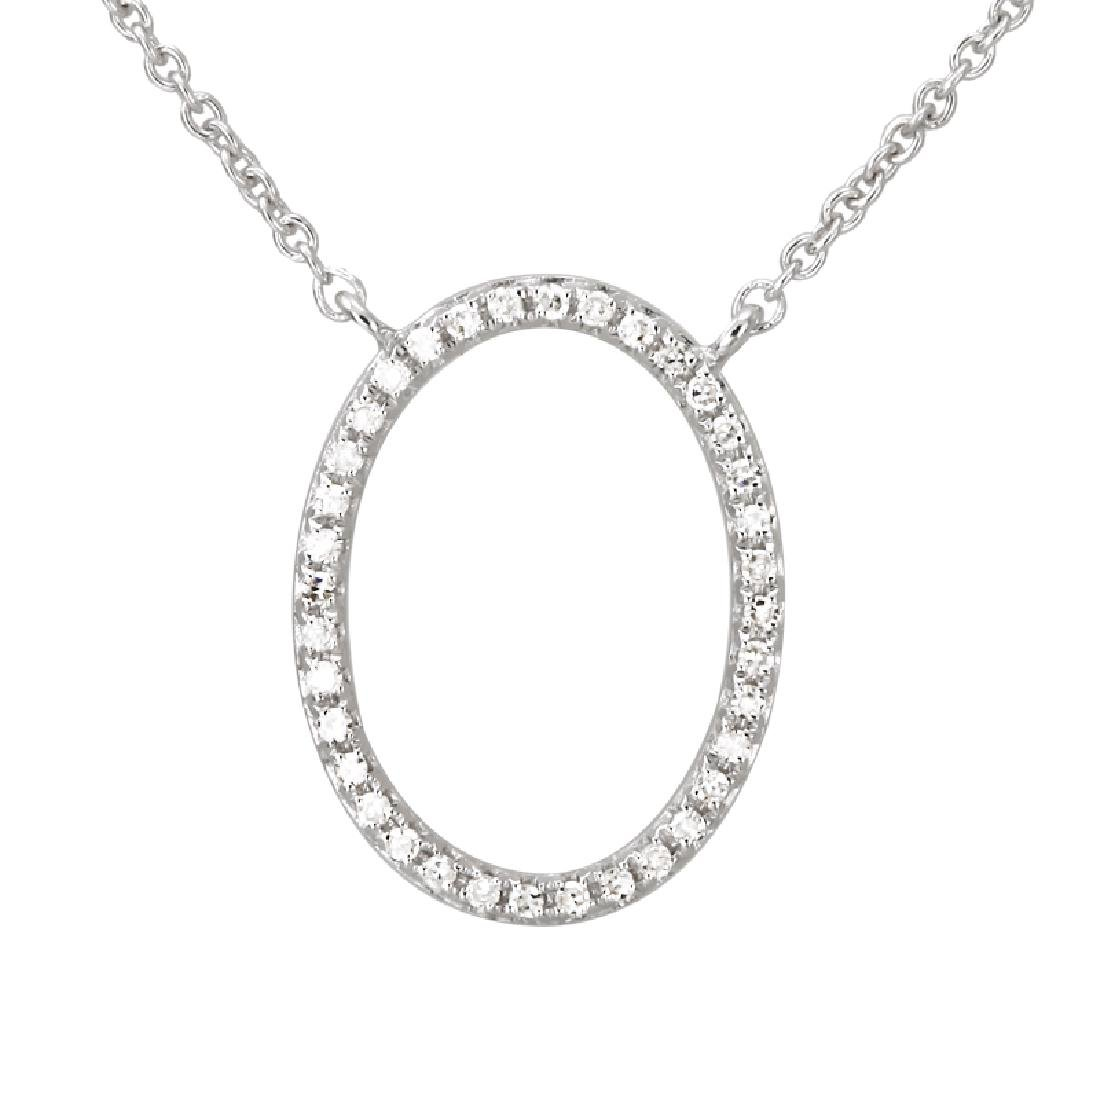 14KT White Gold Diamond Necklace - 2